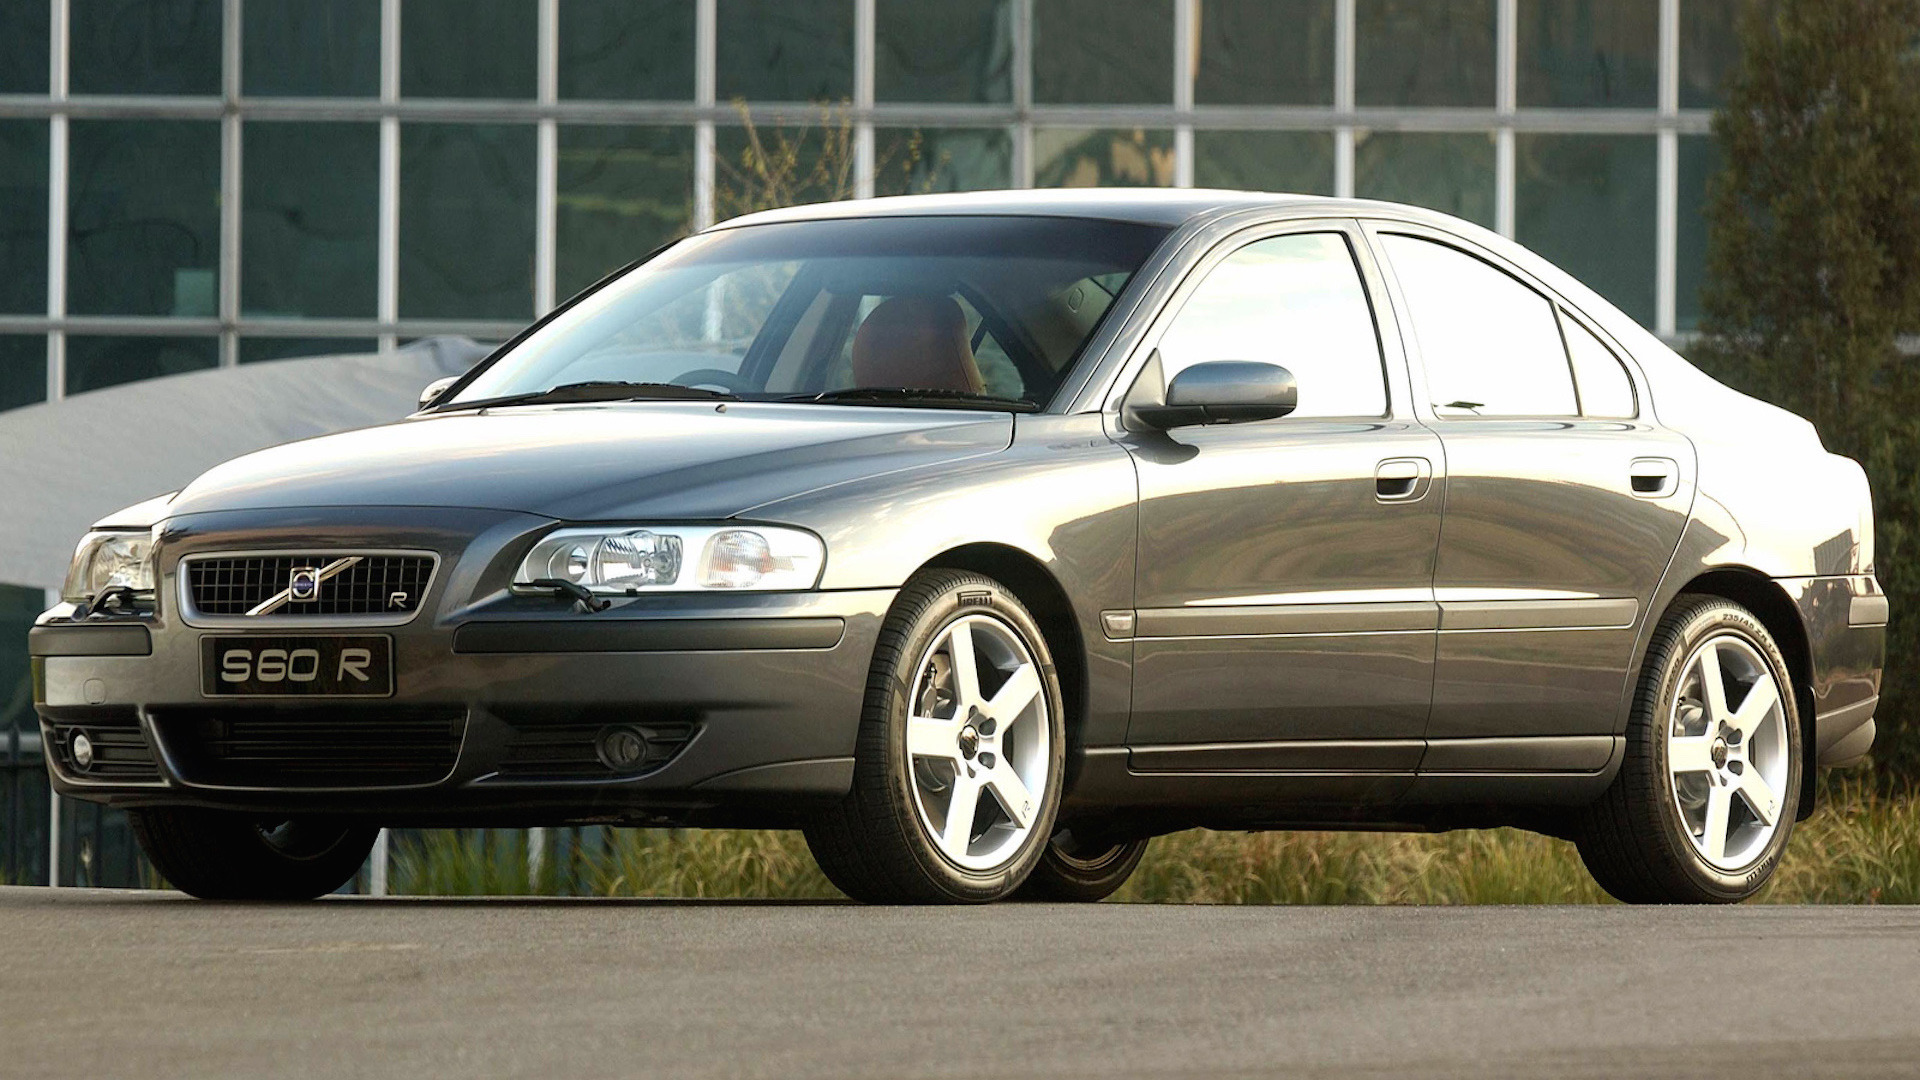 Best Used Cars Under 5000 Beautiful 300 Horsepower Cars You Can Snag for Under $10 000